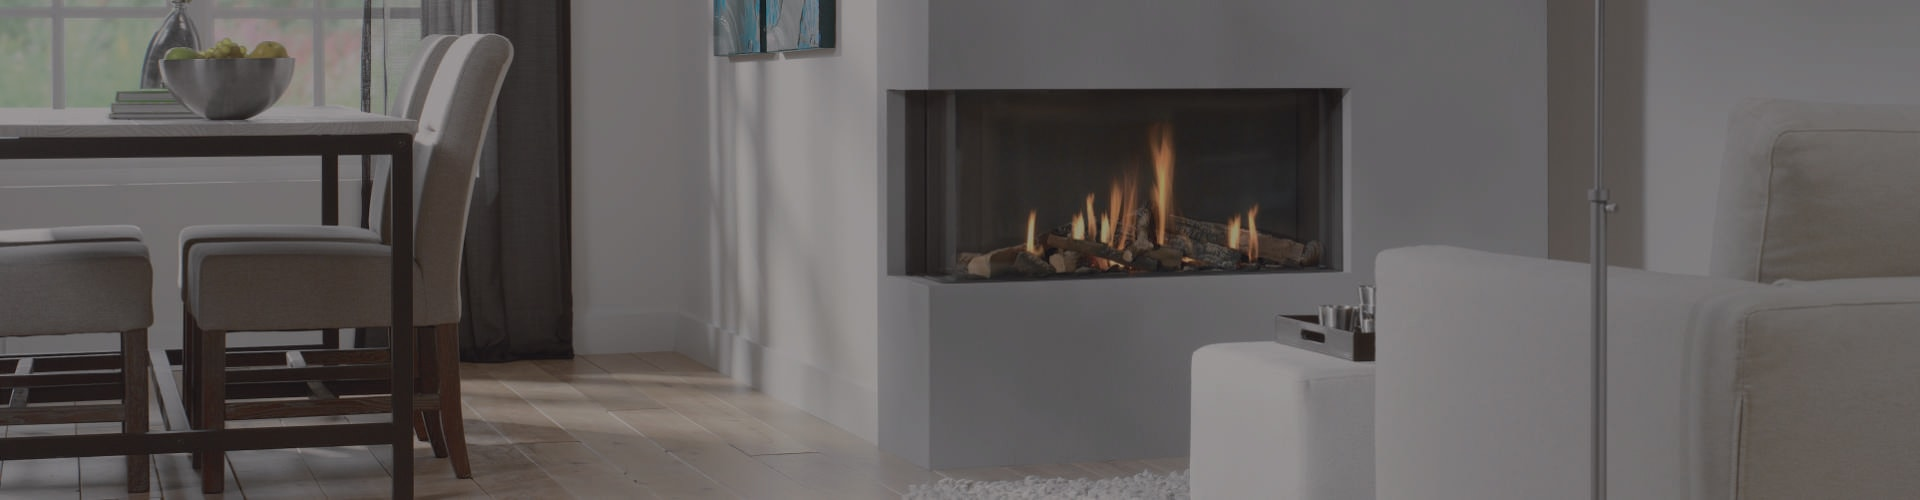 indoor bespoke fireplaces urban choice